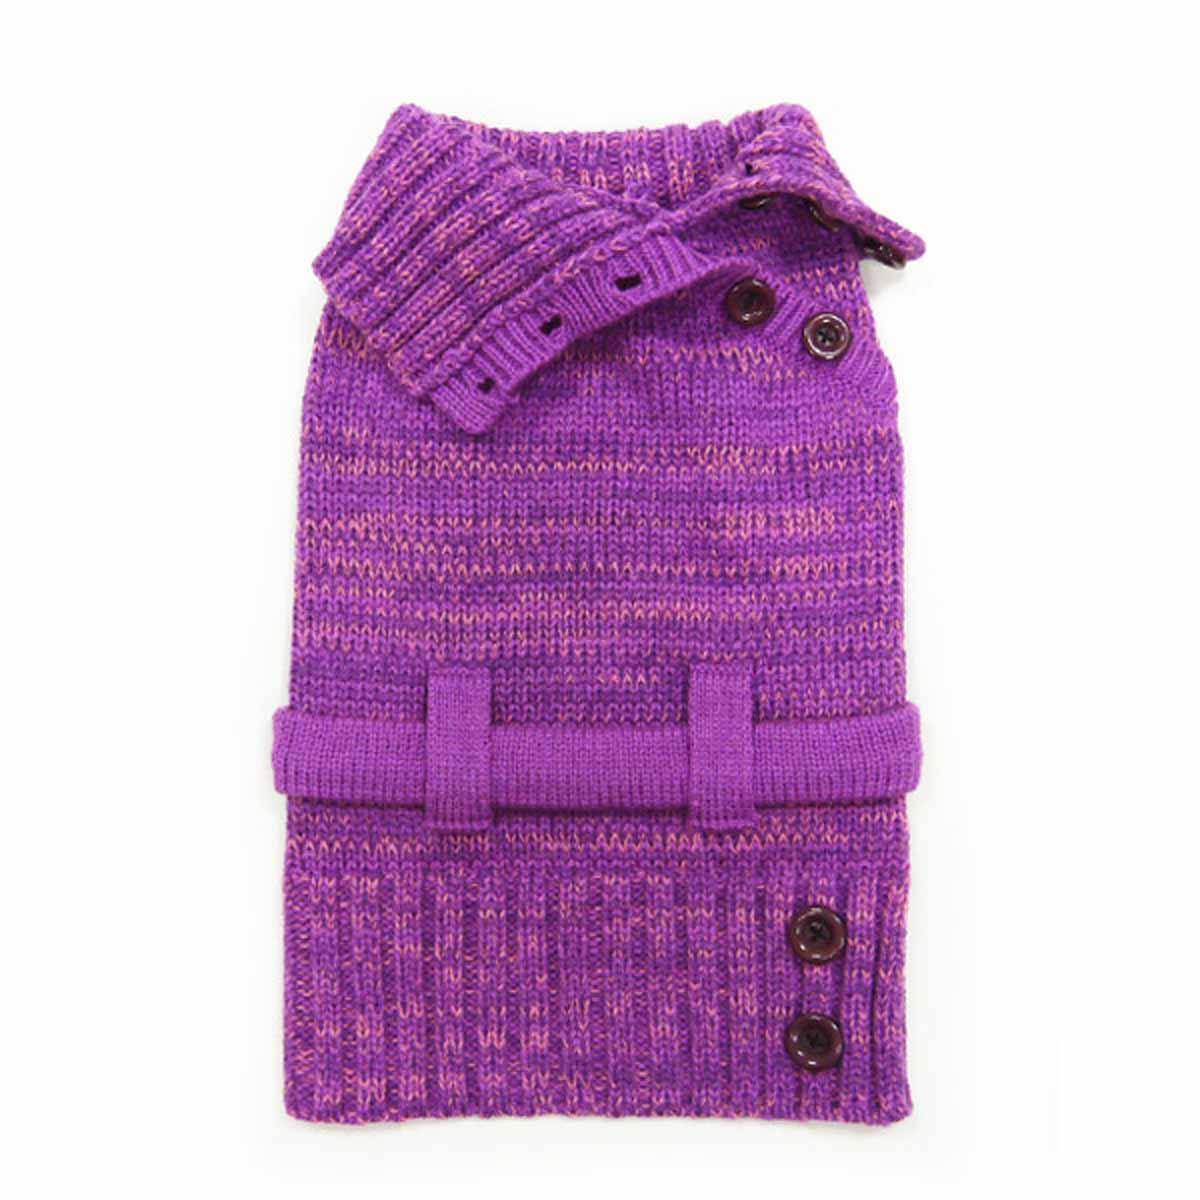 Multiway Dog Sweater by Dogo - Purple